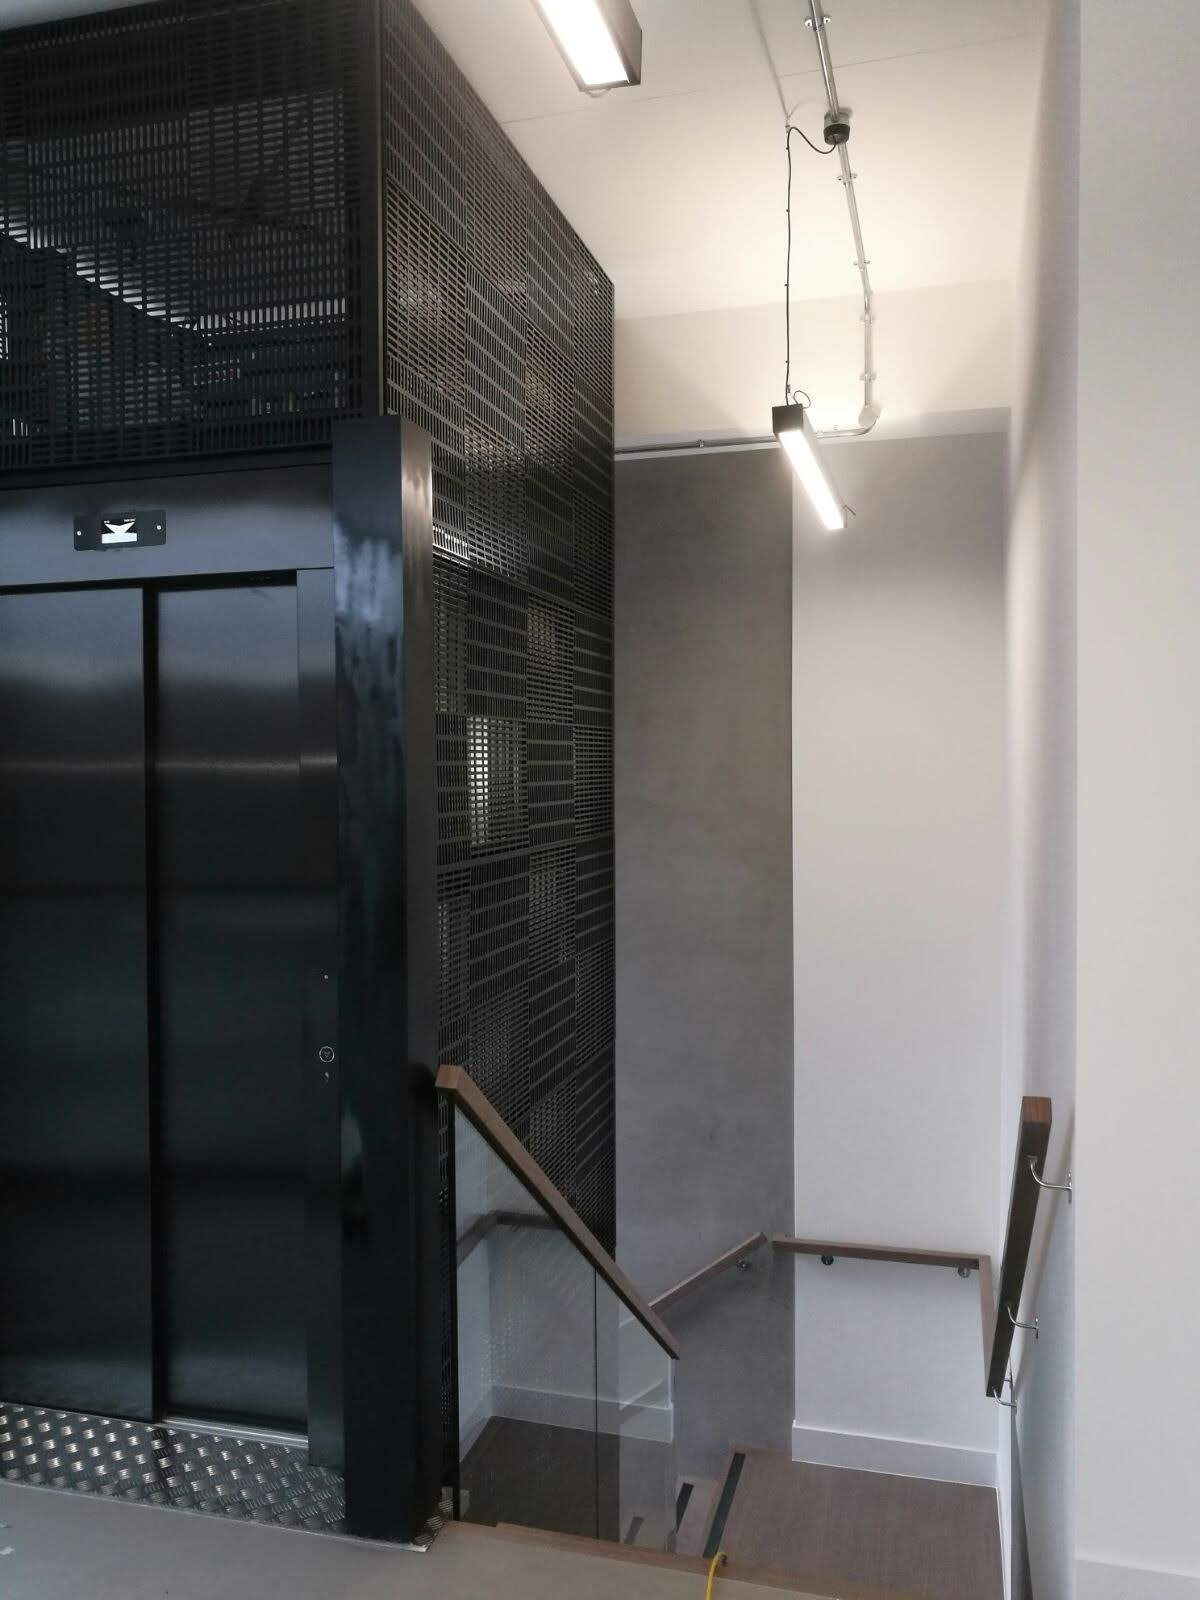 Bespoke cladding for lift shaft. </br><a href='bespoke1.html'>Click here to see more pictures of the lift cladding!</a> </br><a href='staircase6.html'>Click here to see more pictures of the staircase!</a>